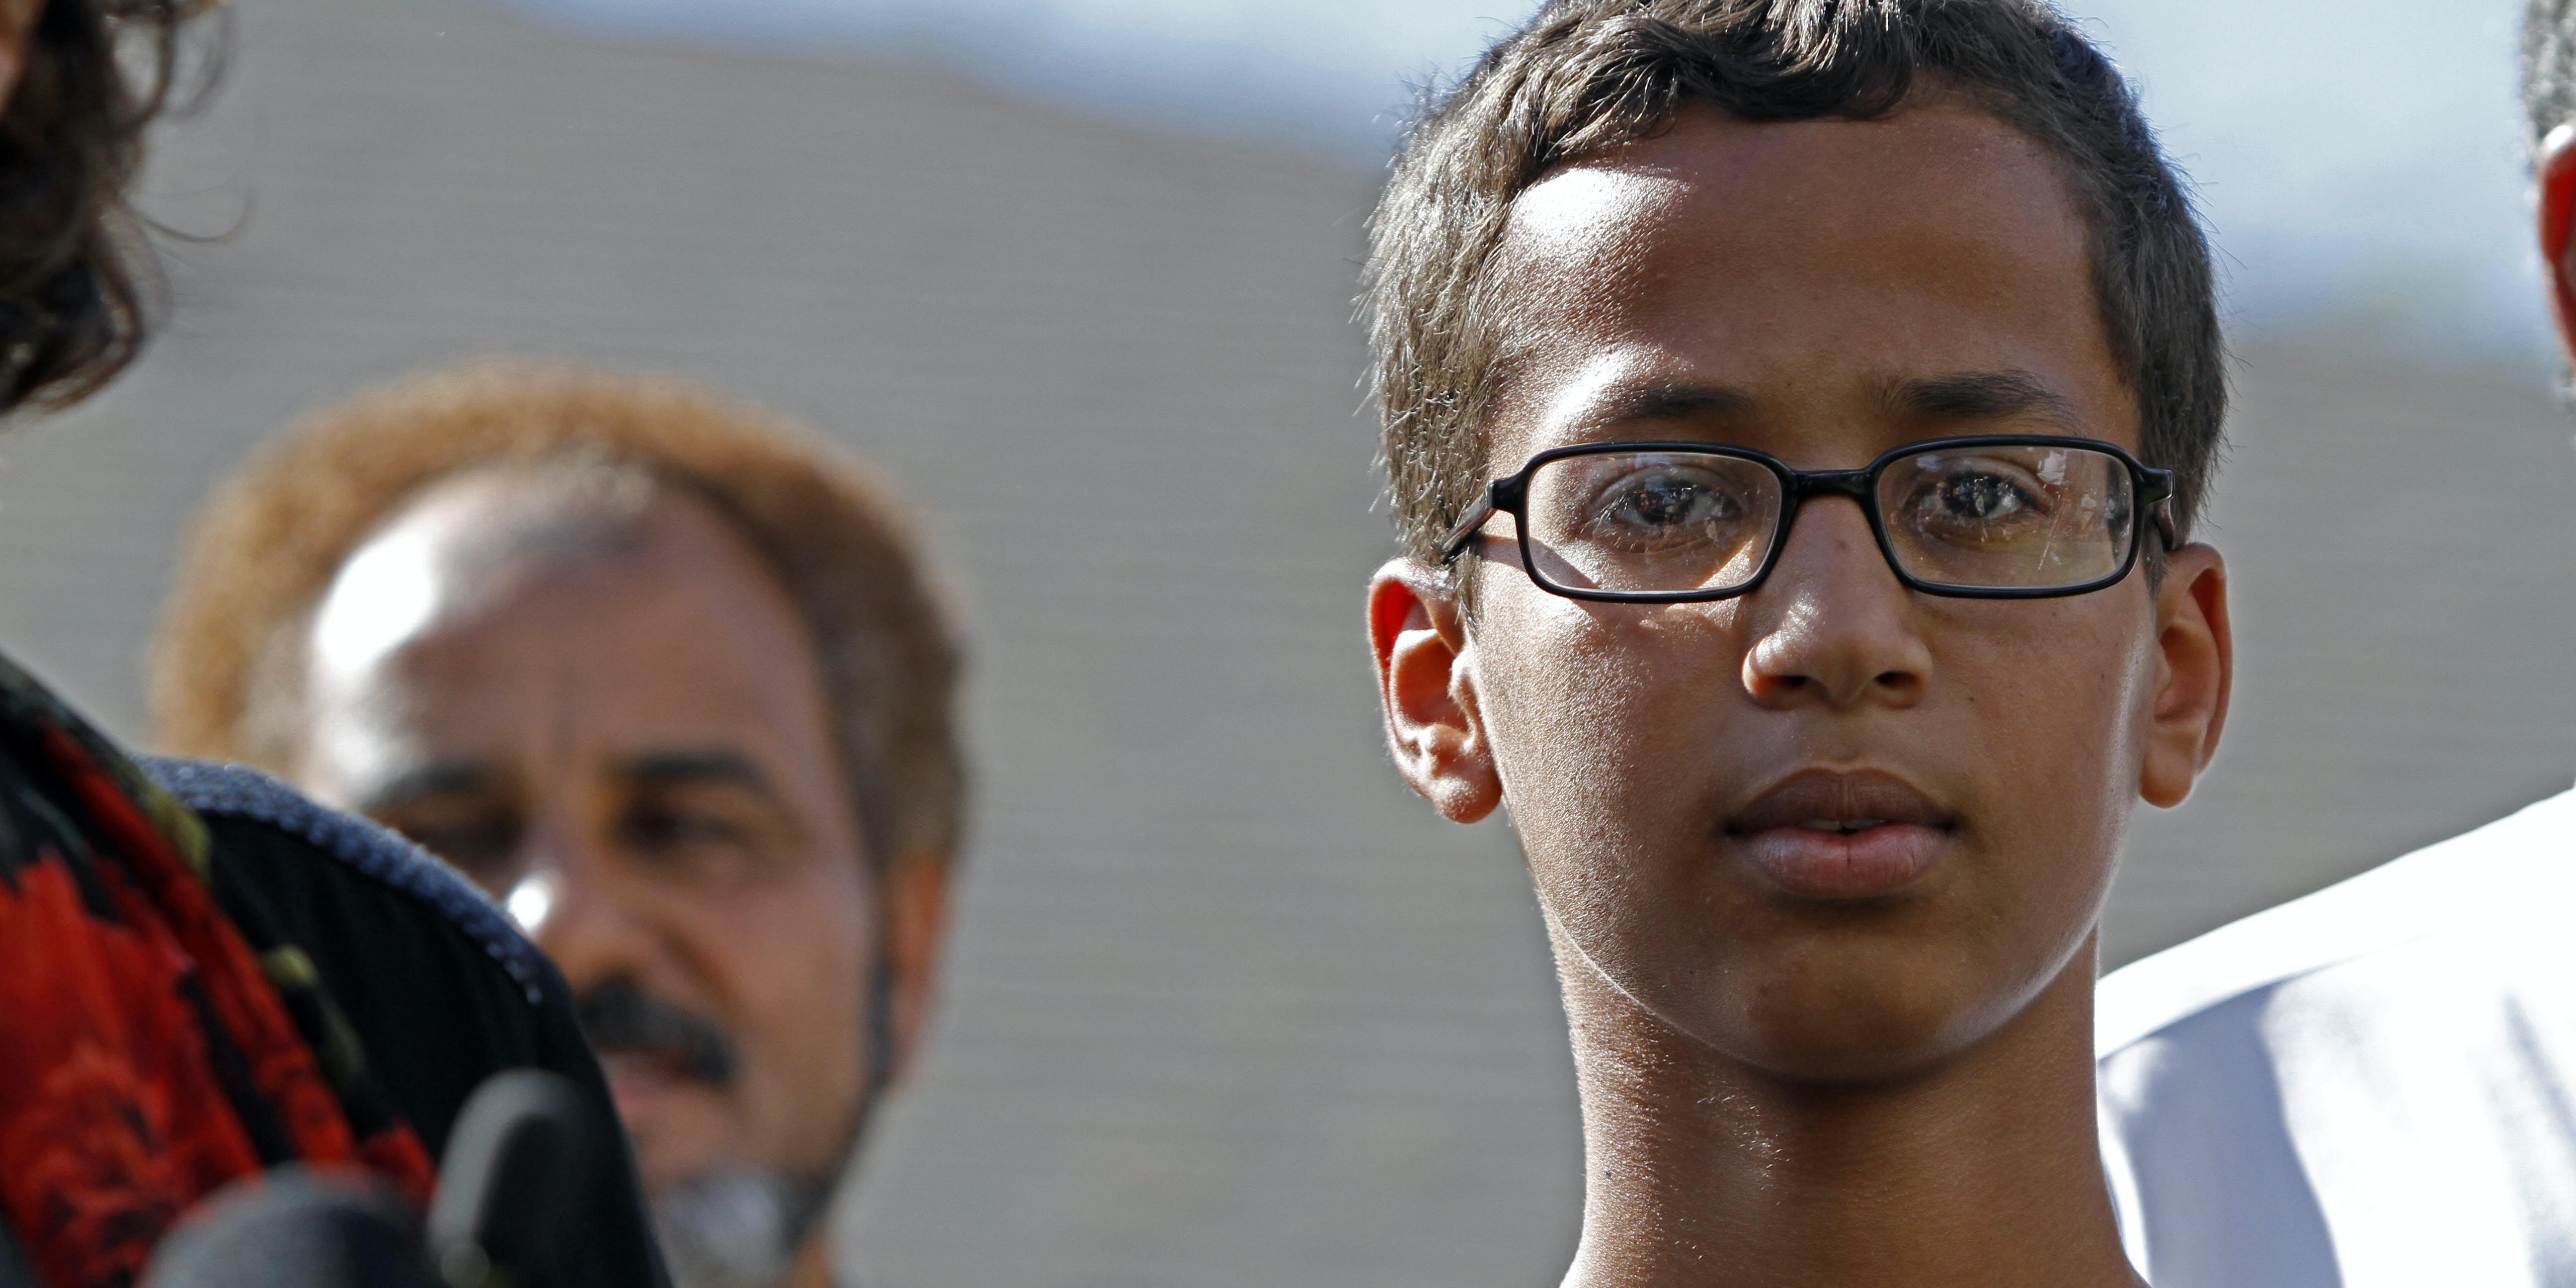 14-year-old Ahmed Ahmed Mohamed speaks during a news conference on September 16, 2015 in Irving, Texas. Mohammed was detained after a high school teacher falsely concluded that a homemade clock he brought to class might be a bomb. The news conference, held outside the Mohammed family home, was hosted by the North Texas Chapter of the Council on American-Islamic Relations.